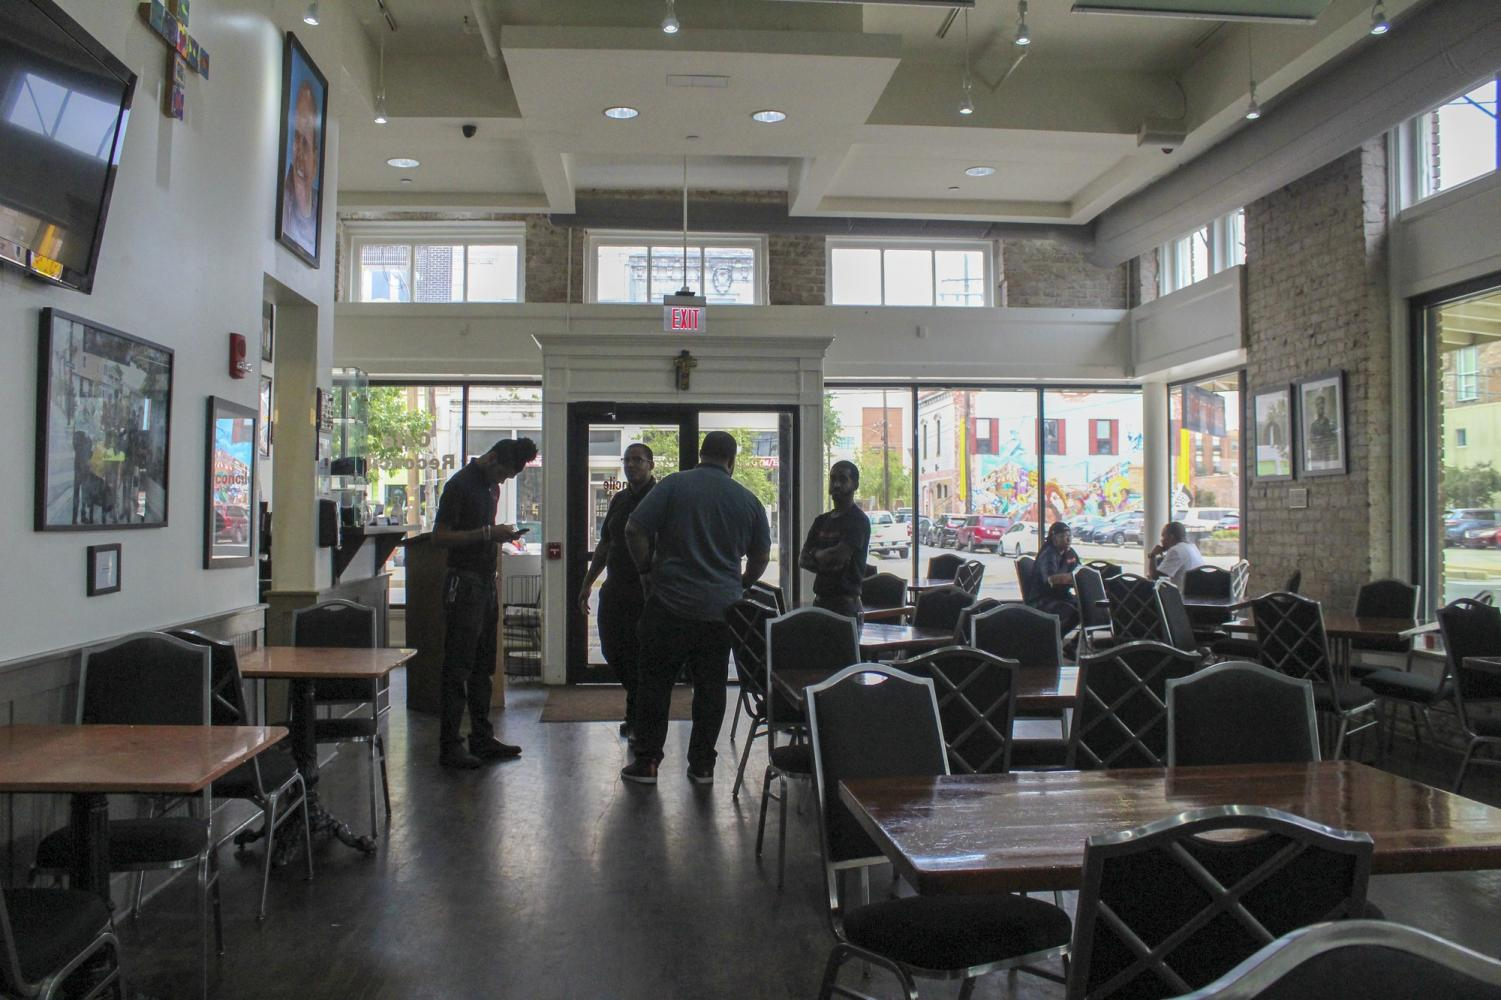 Café Reconcile employees talk right before closing time on Sept. 13th. Café Reconcile has many programs for underprivileged youth in New Orleans. Photo credit: Cristian Orellana